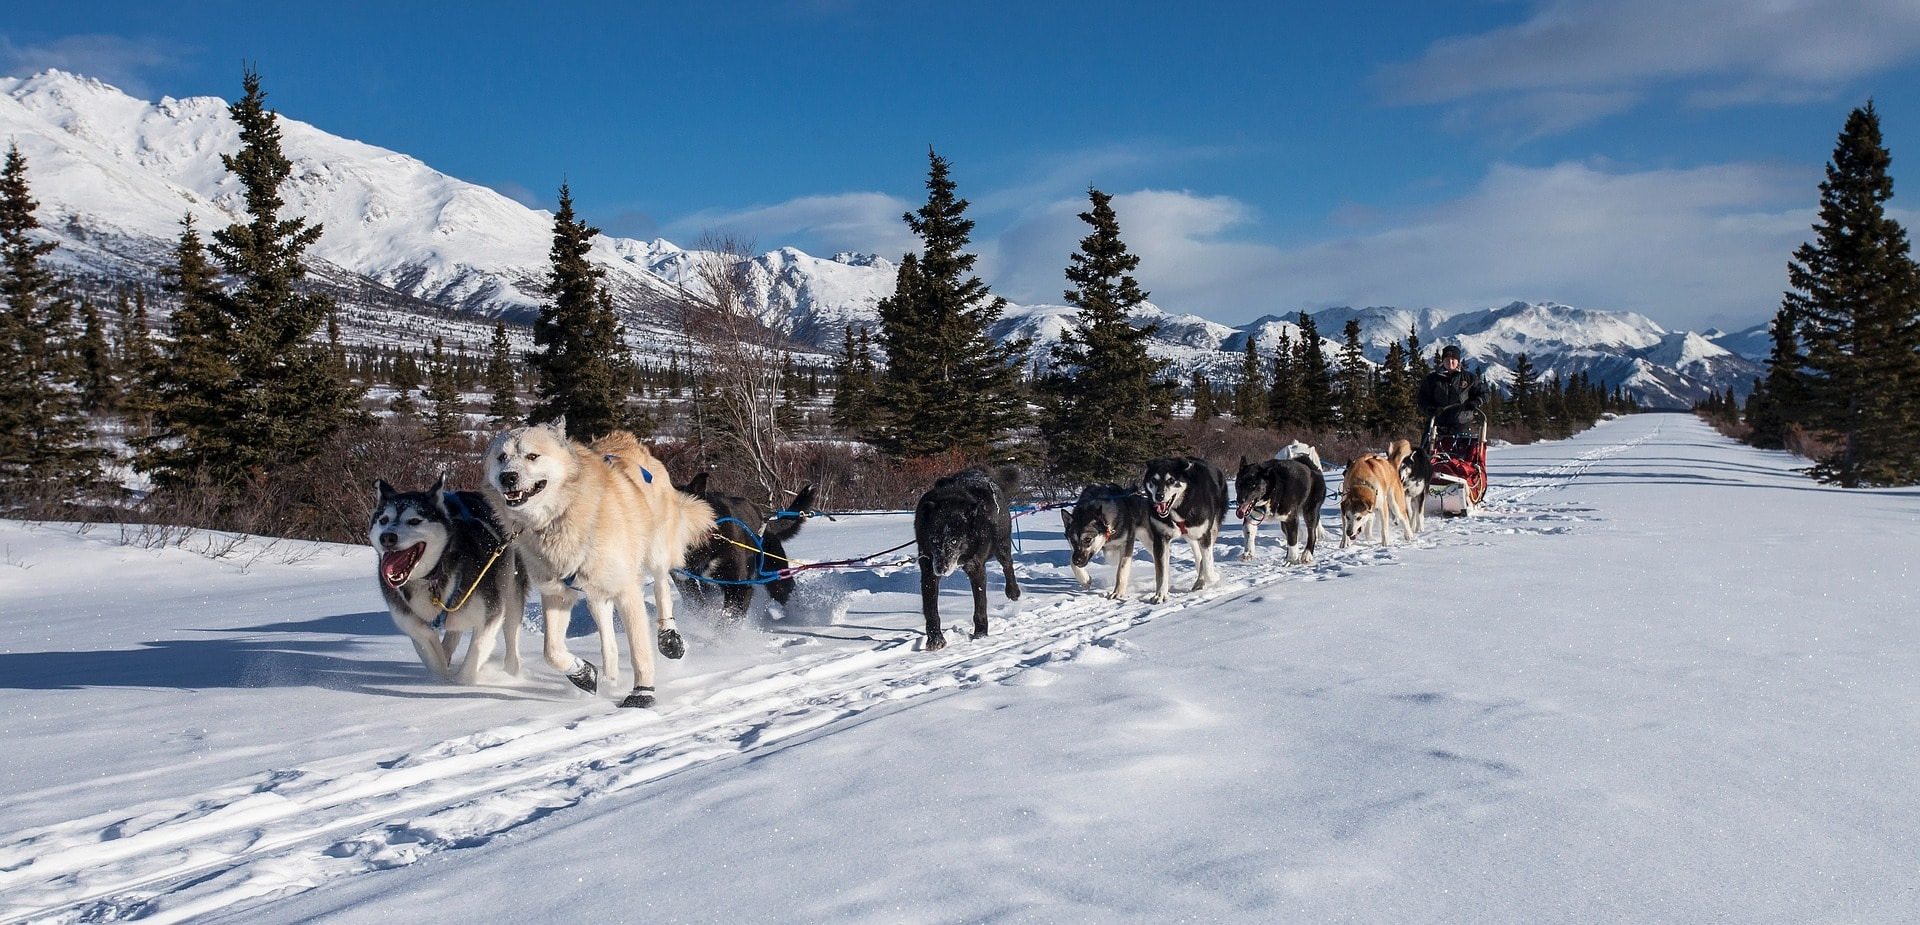 You can participate in a dog sled ride in all kinds of ways. This ranges from 20-minute excursions to multi-day husky tours along jungle huts.